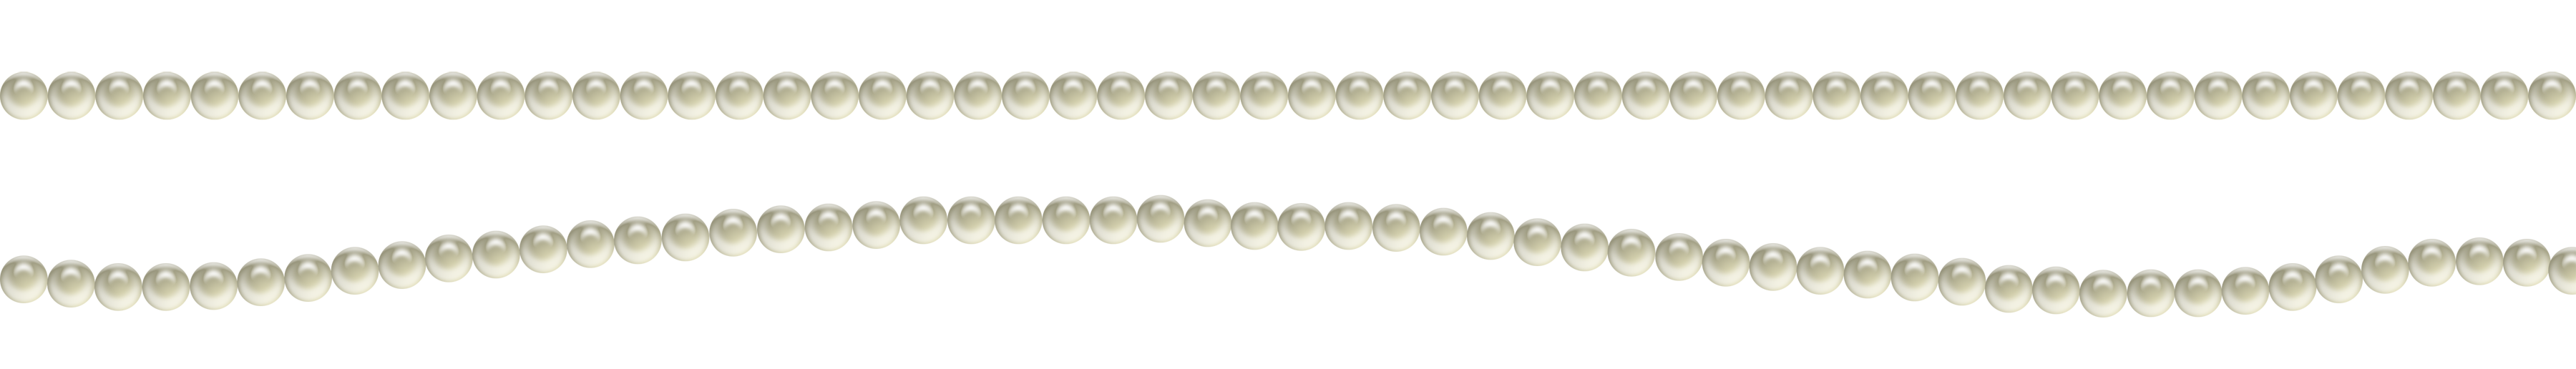 String of pearls png. Pearl